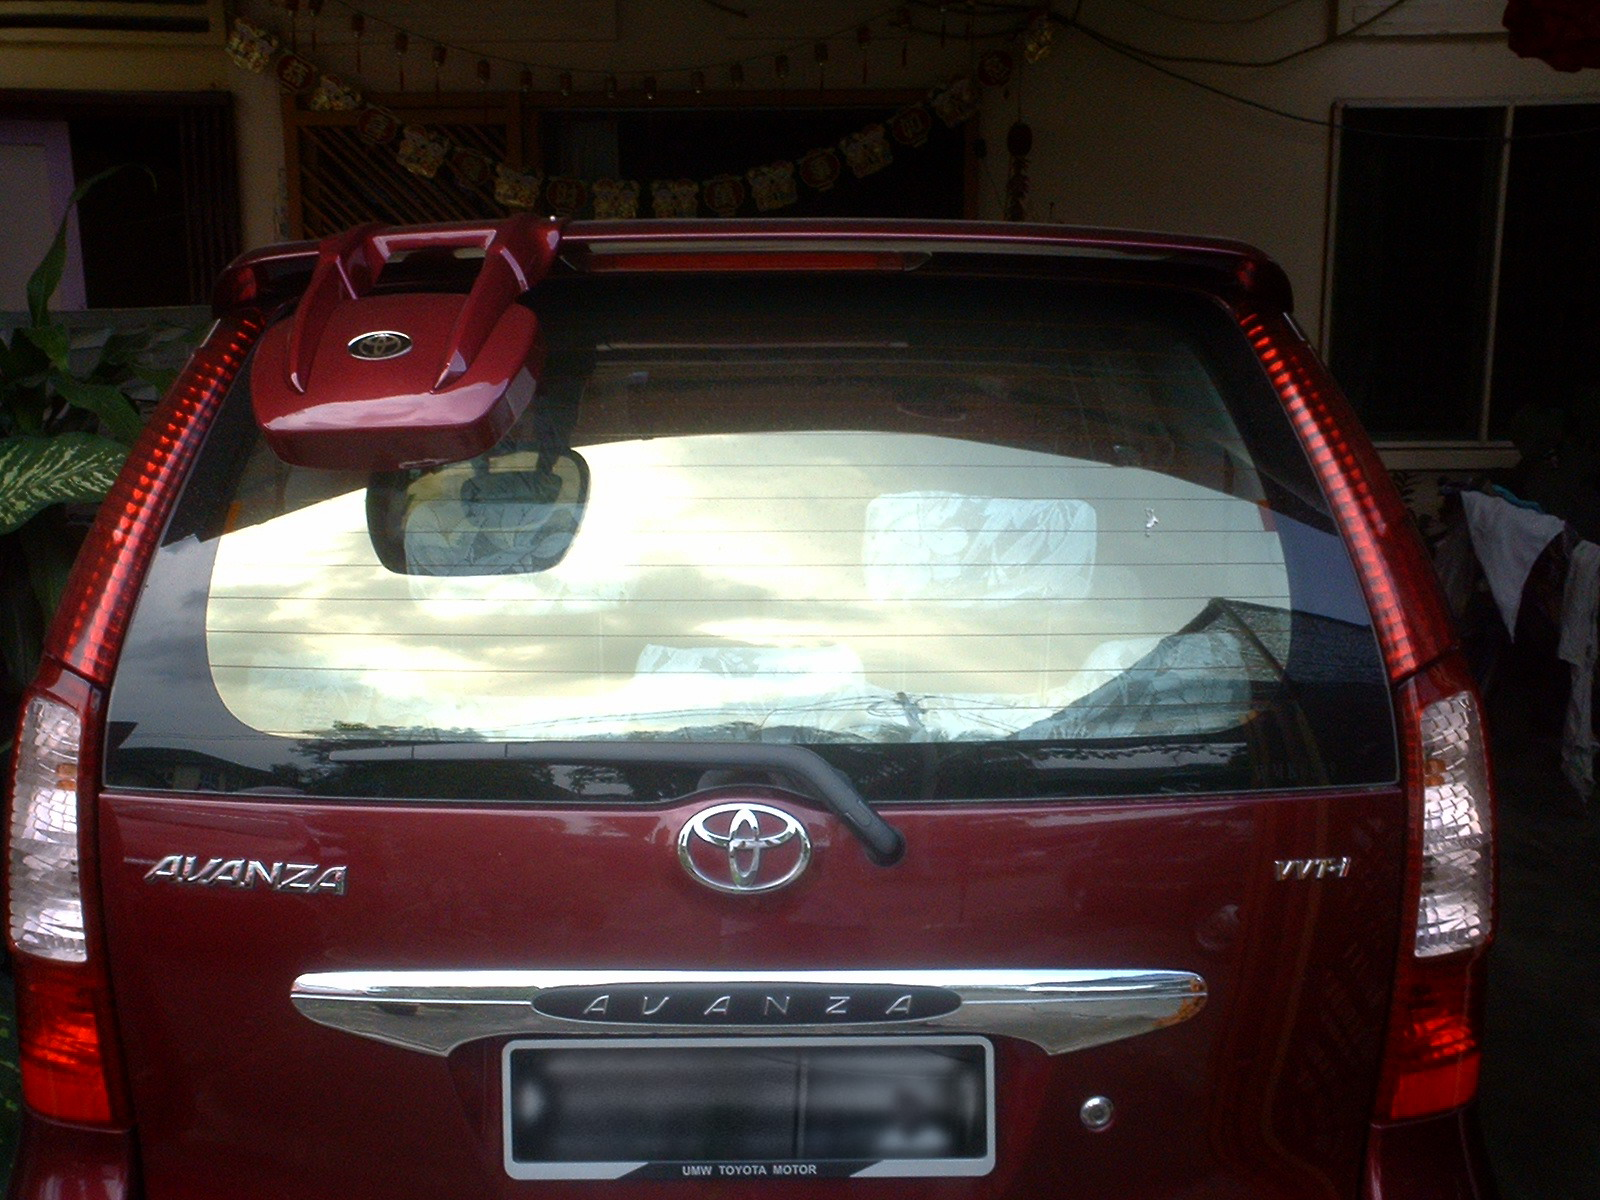 Re: AVANZA Accessories (Pictures, price, new)